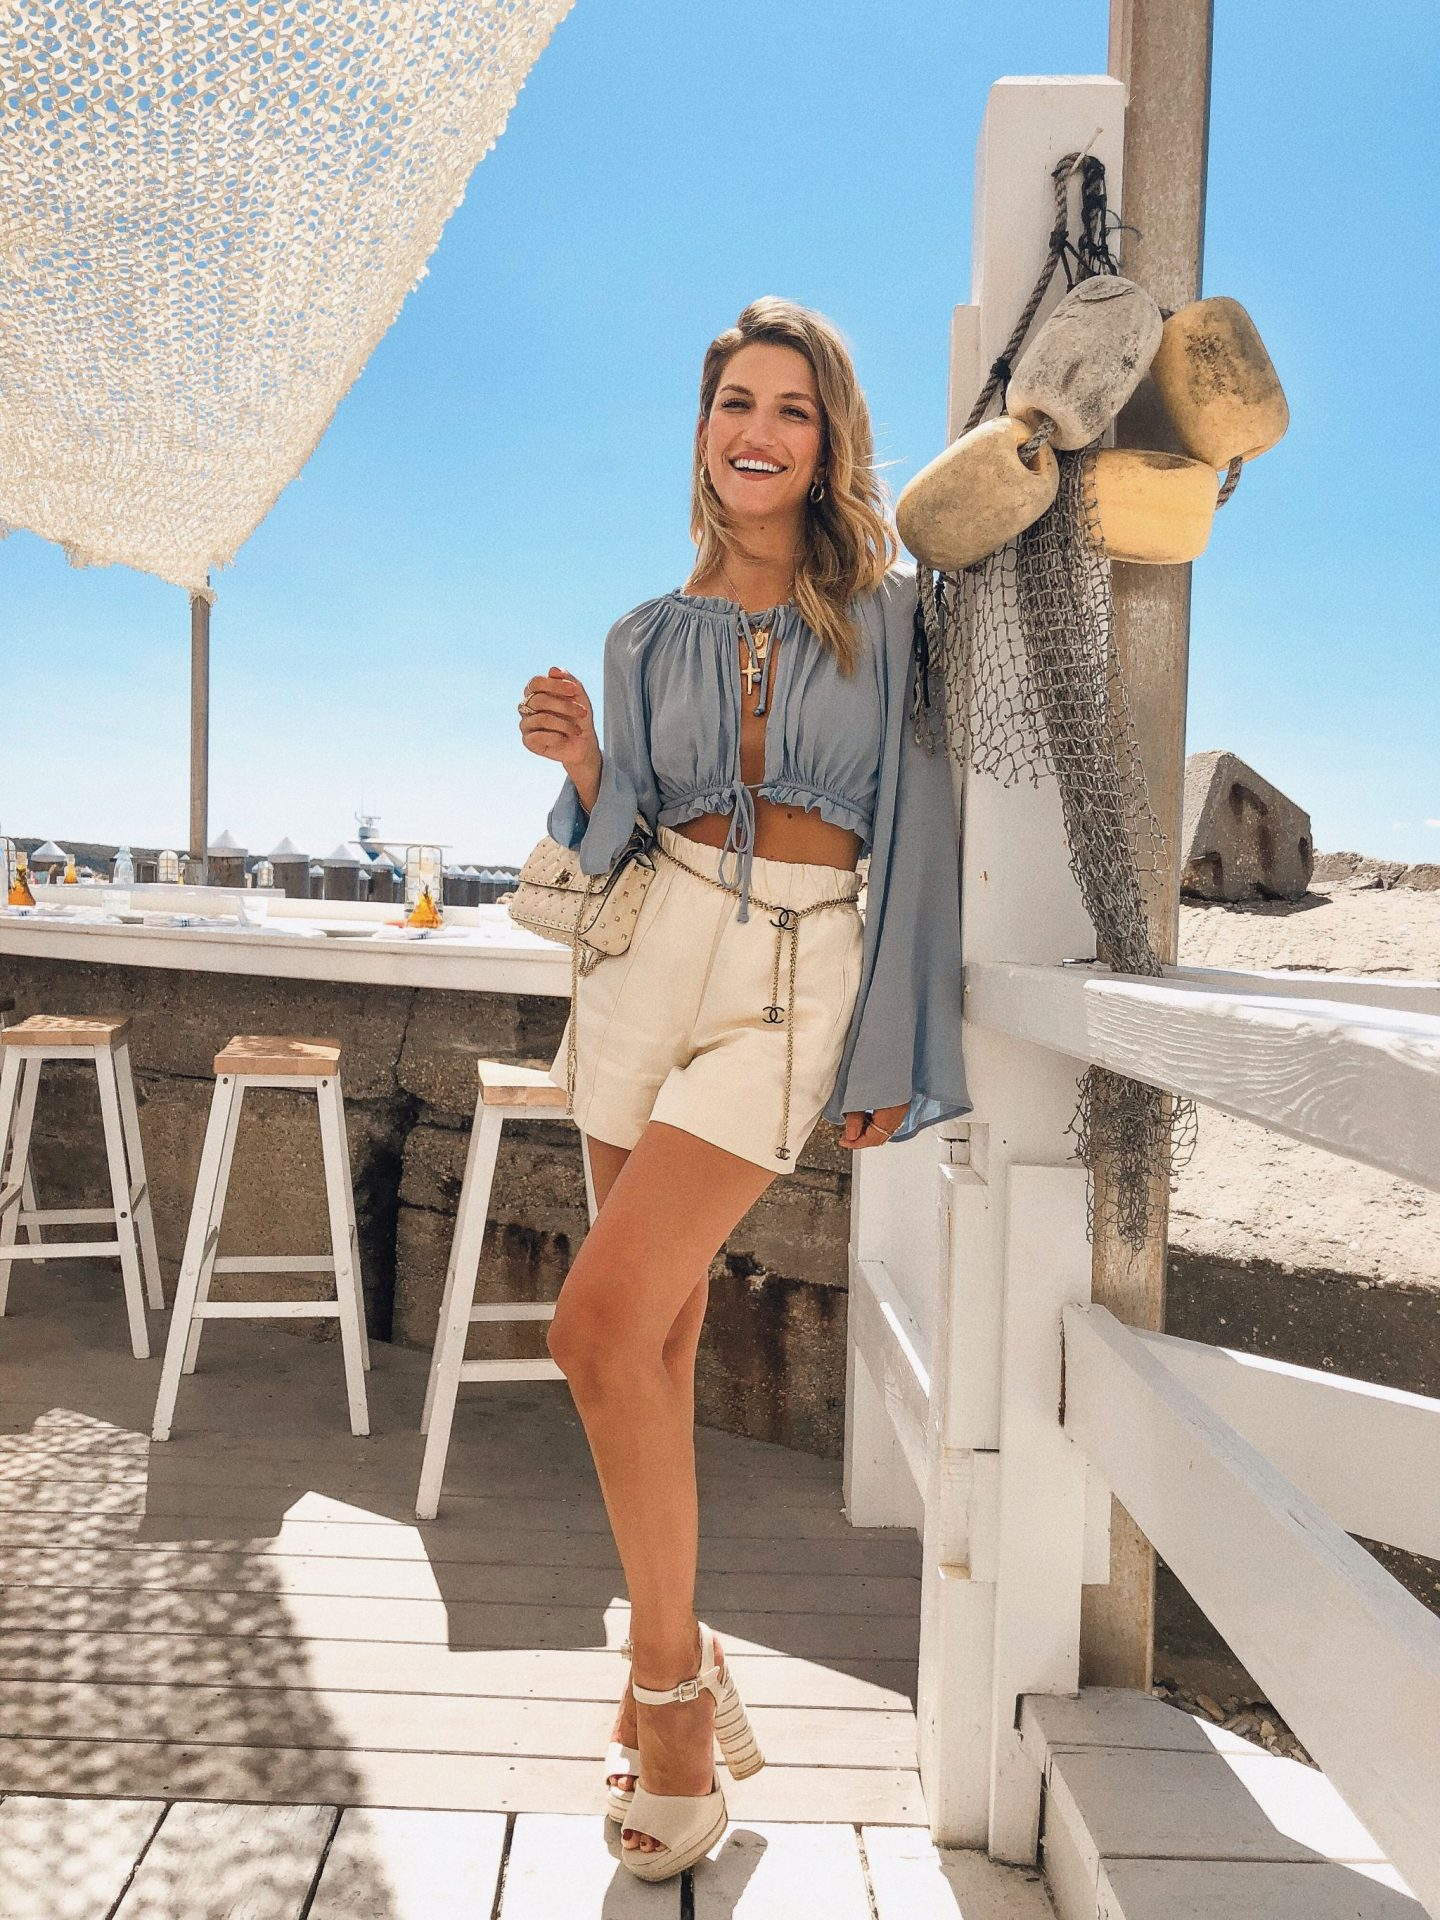 Cassandra DiMicco, Cass DiMicco, Dressed For Dreams, NYC, New York City, New York, Street Style NYC, Street Style 2018, NYC Street Style Street Style Outfits, 2018 Trends, NYC Fashion Blogger, NYC to do list, NYC to do, NYC bucket list, NYC Instagram Spots, Duryea's Lobster Deck, Duryea's Montauk, Montauk, The Hamptons, Hamptons Eats, Blue Life Tropicana Tie Top, Blue Life Crop Top, Blue Life Tropicana Top, Helmut Lang Shorts, Helmut Lang, Schutz Jane Platforms, Schutz Heels, Chanel Belt, Chanel Chain Belt, Vintage Chanel, Valentino Rockstud Purse, Summer Outfit Inspo, 2018 Trends